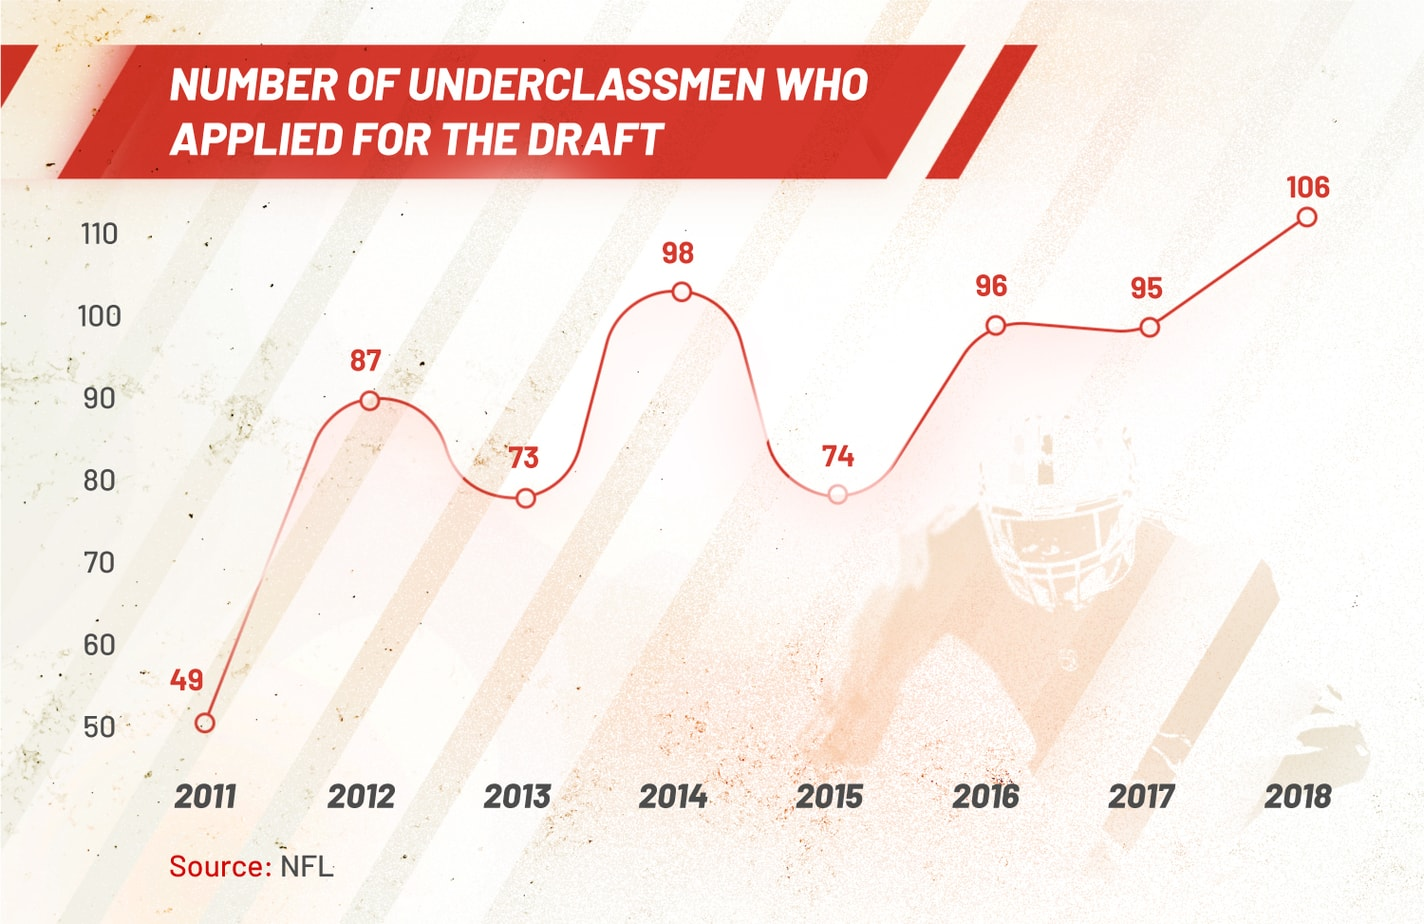 number of underclassmen who applied for the draft